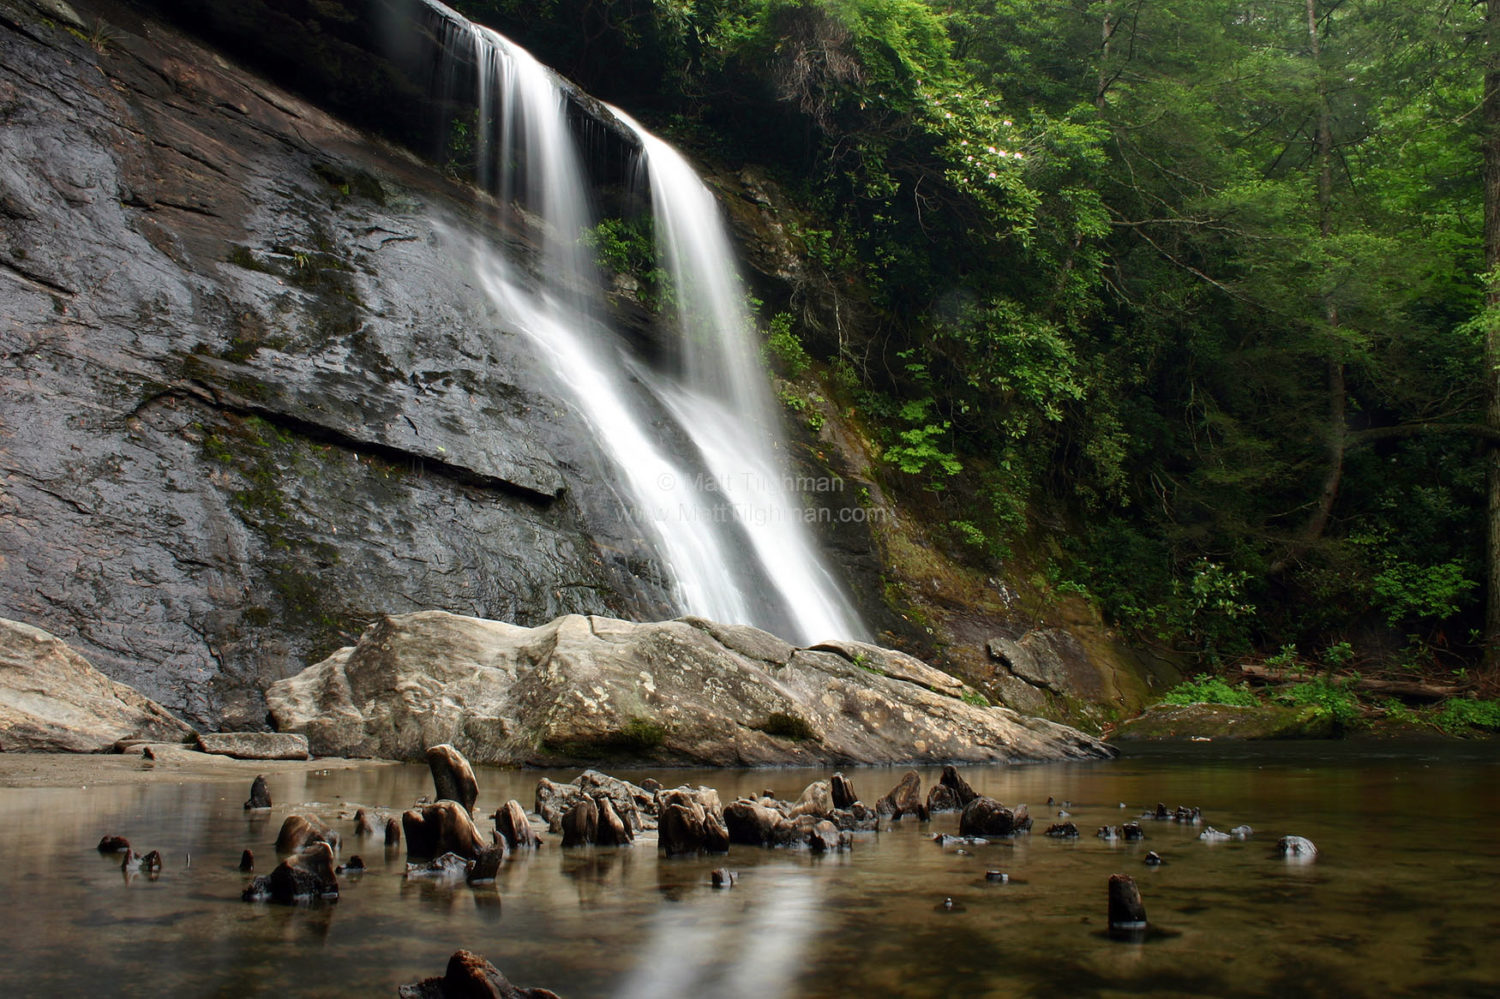 Fine art stock photograph of Silver Run Falls, a large waterfall near Cashiers, North Carolina. The area is a temperate rain forest, but this picture shows the falls after a drought.